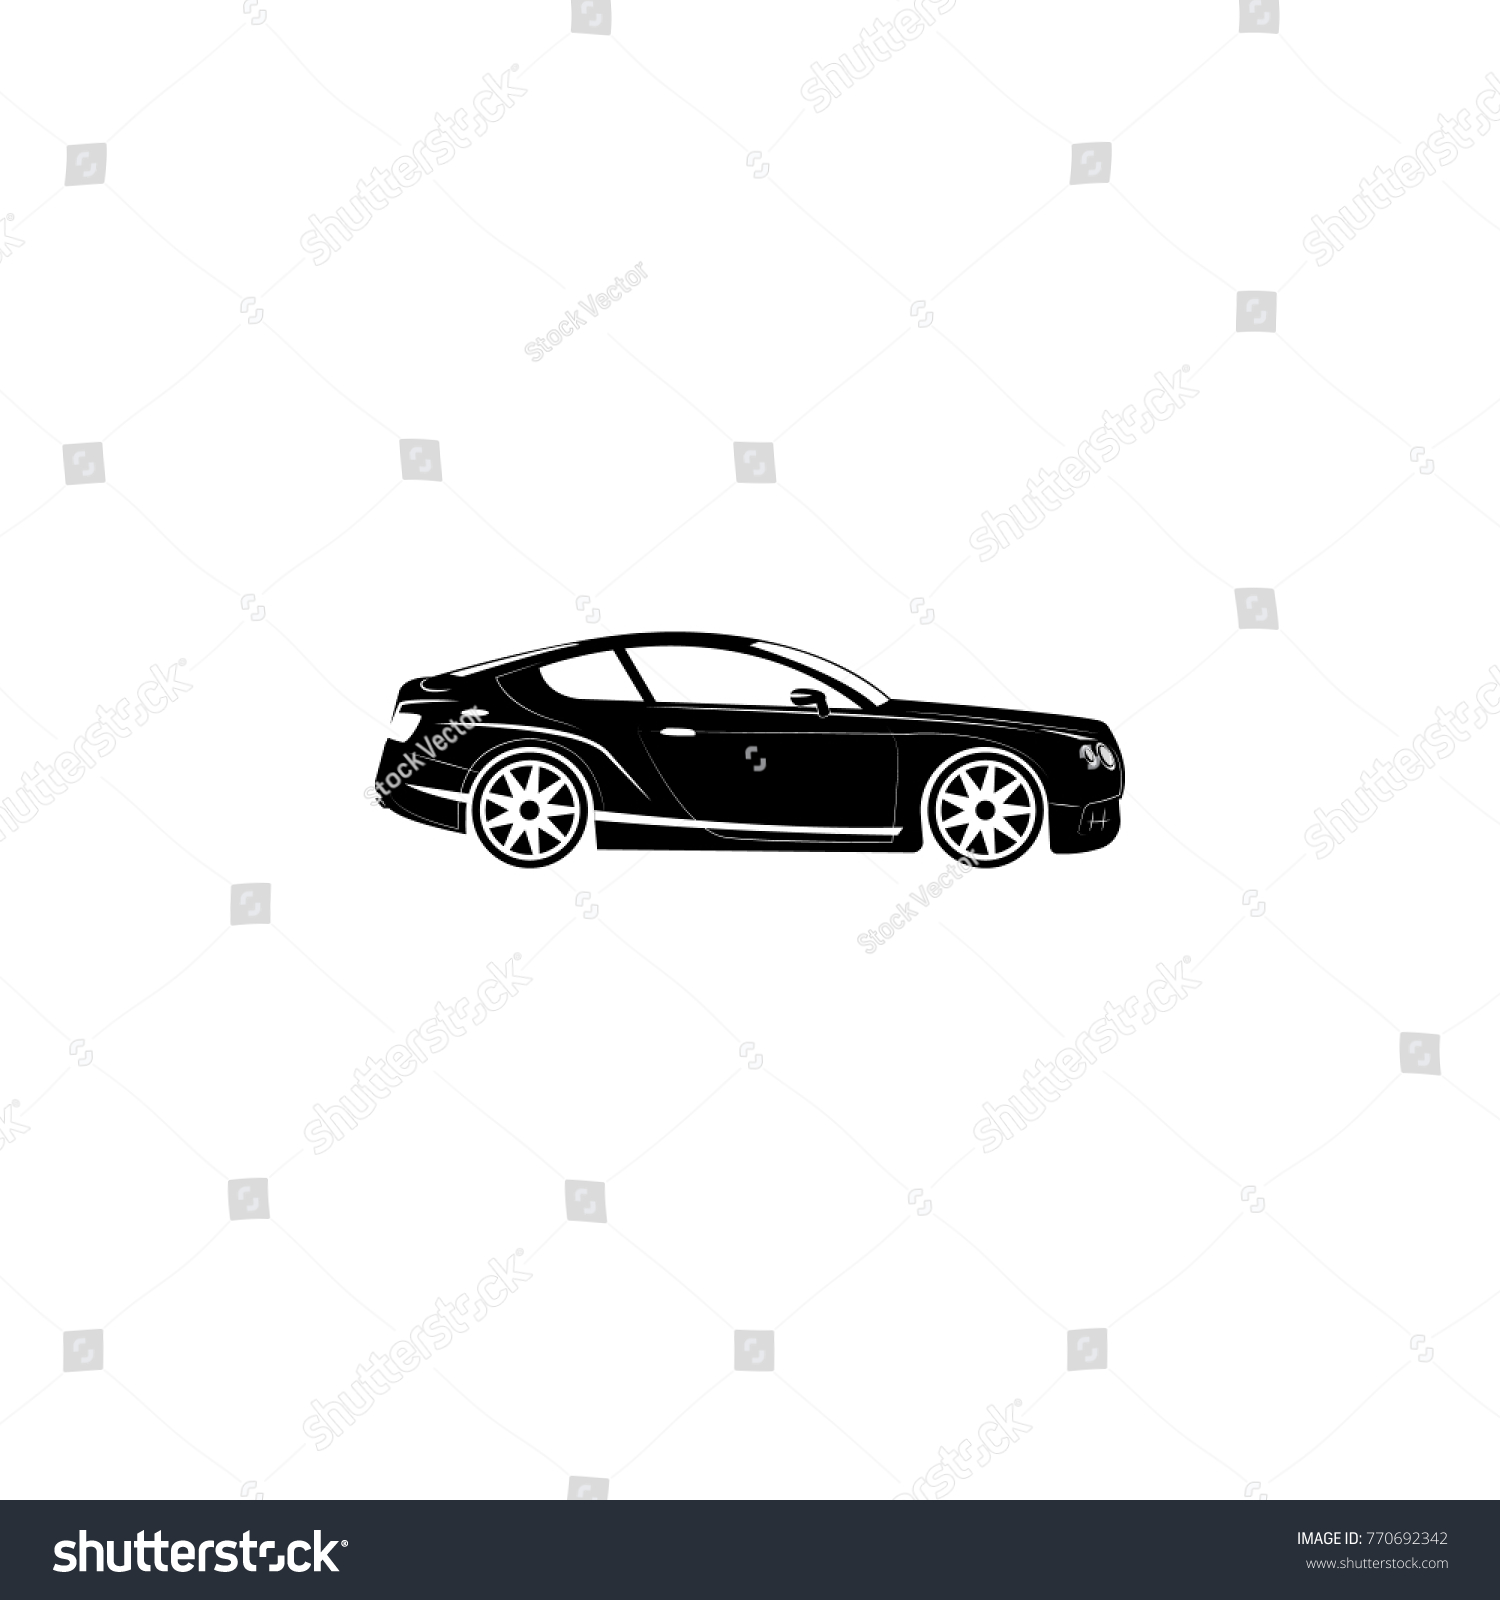 Luxury Sport Car Icon Transport Elements Stock Vector HD (Royalty ...